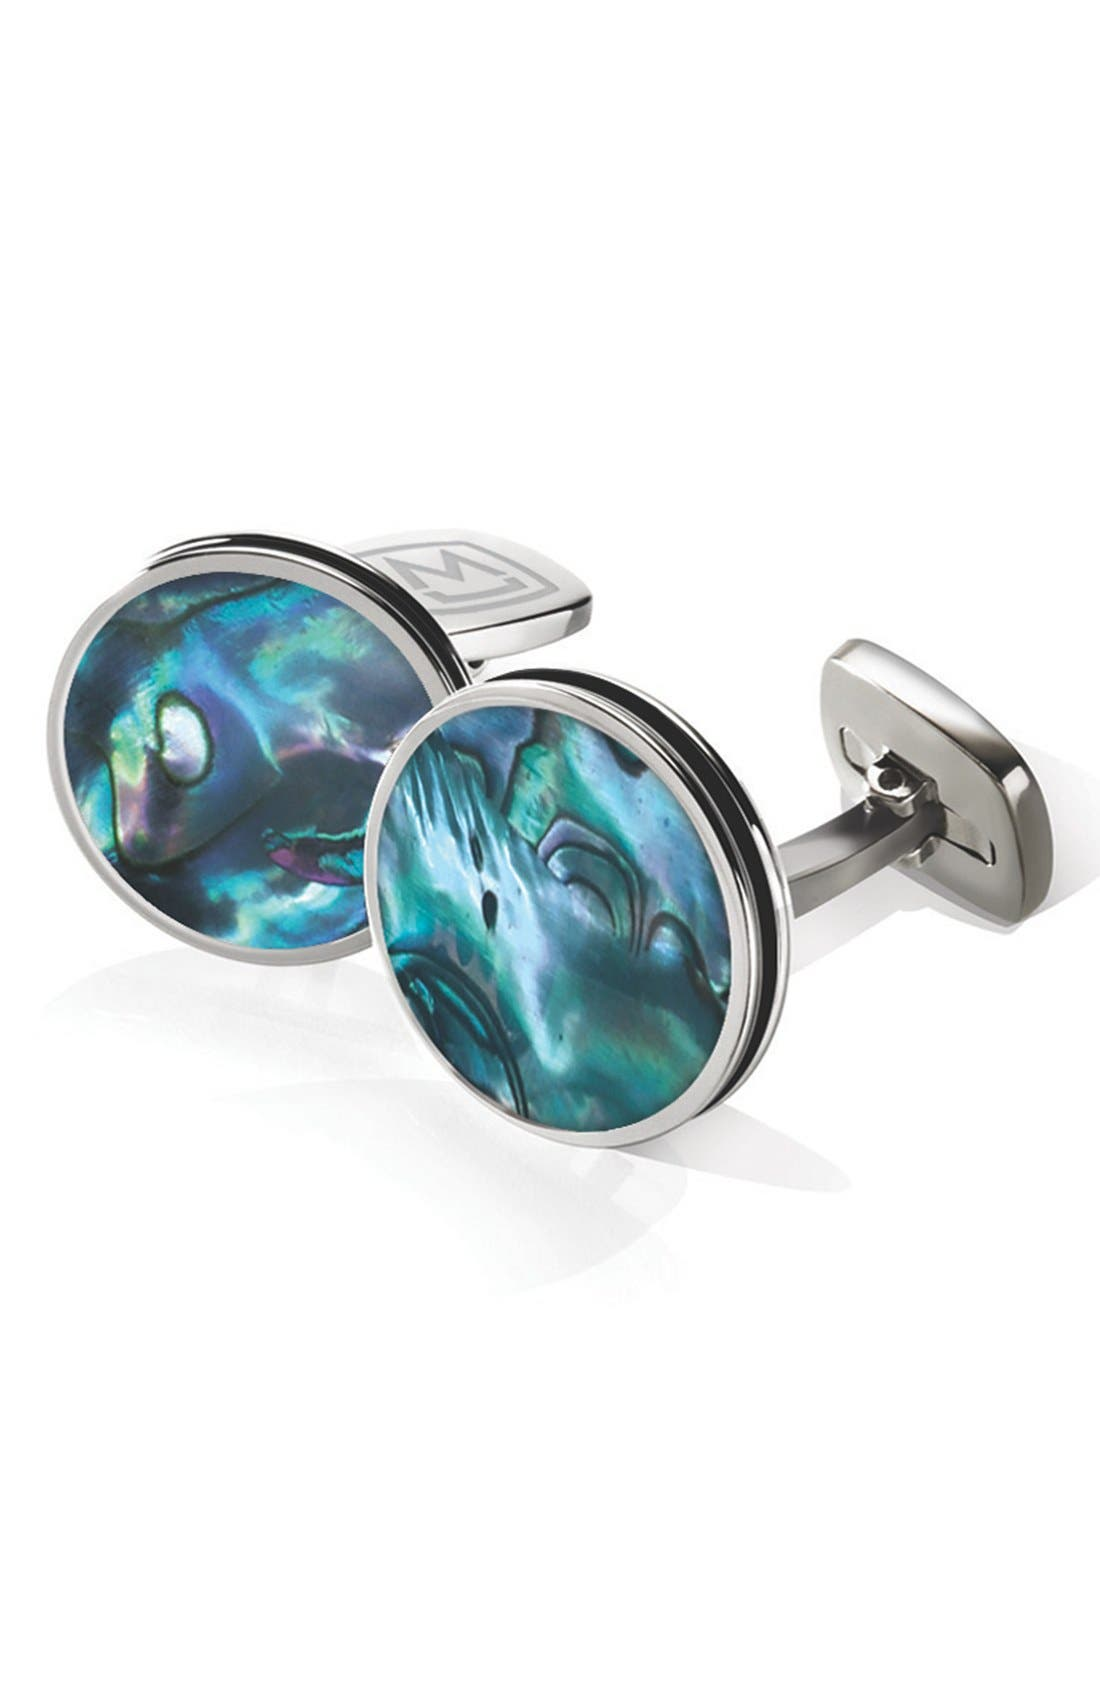 Abalone Cuff Links,                             Main thumbnail 1, color,                             040